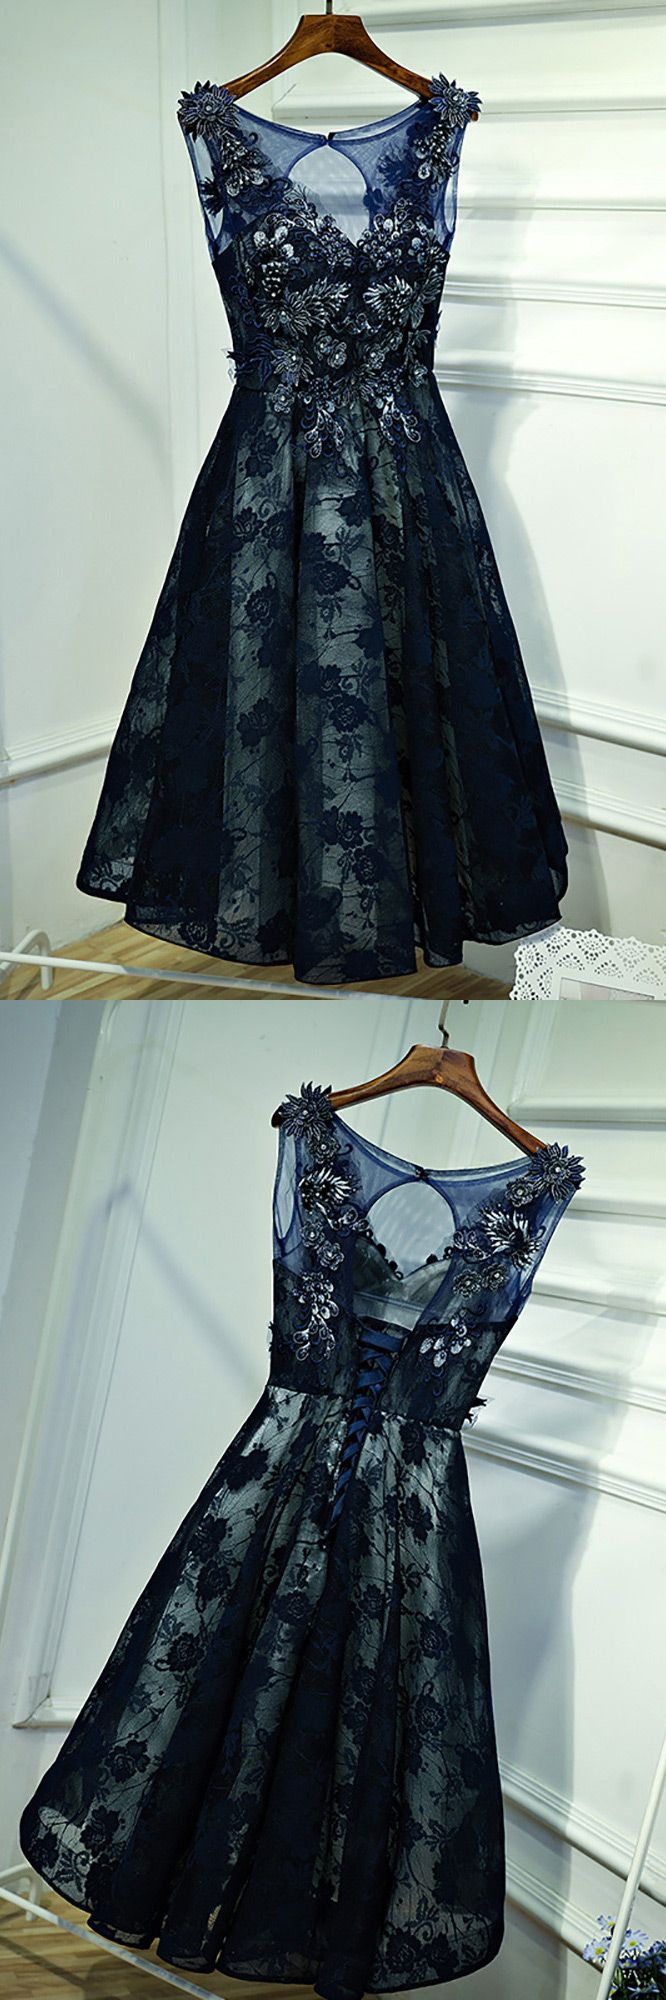 Only $118, Gorgeous Navy Blue Lace Short Formal Party Dress With Appliques #MYX18143 at #SheProm. SheProm is an online store with thousands of dresses, range from Prom,Homecoming,Party,Blue,Navy,A Line Dresses,Lace Dresses and so on. Not only selling formal dresses, more and more trendy dress styles will be updated daily to our store. With low price and high quality guaranteed, you will definitely like shopping from us.